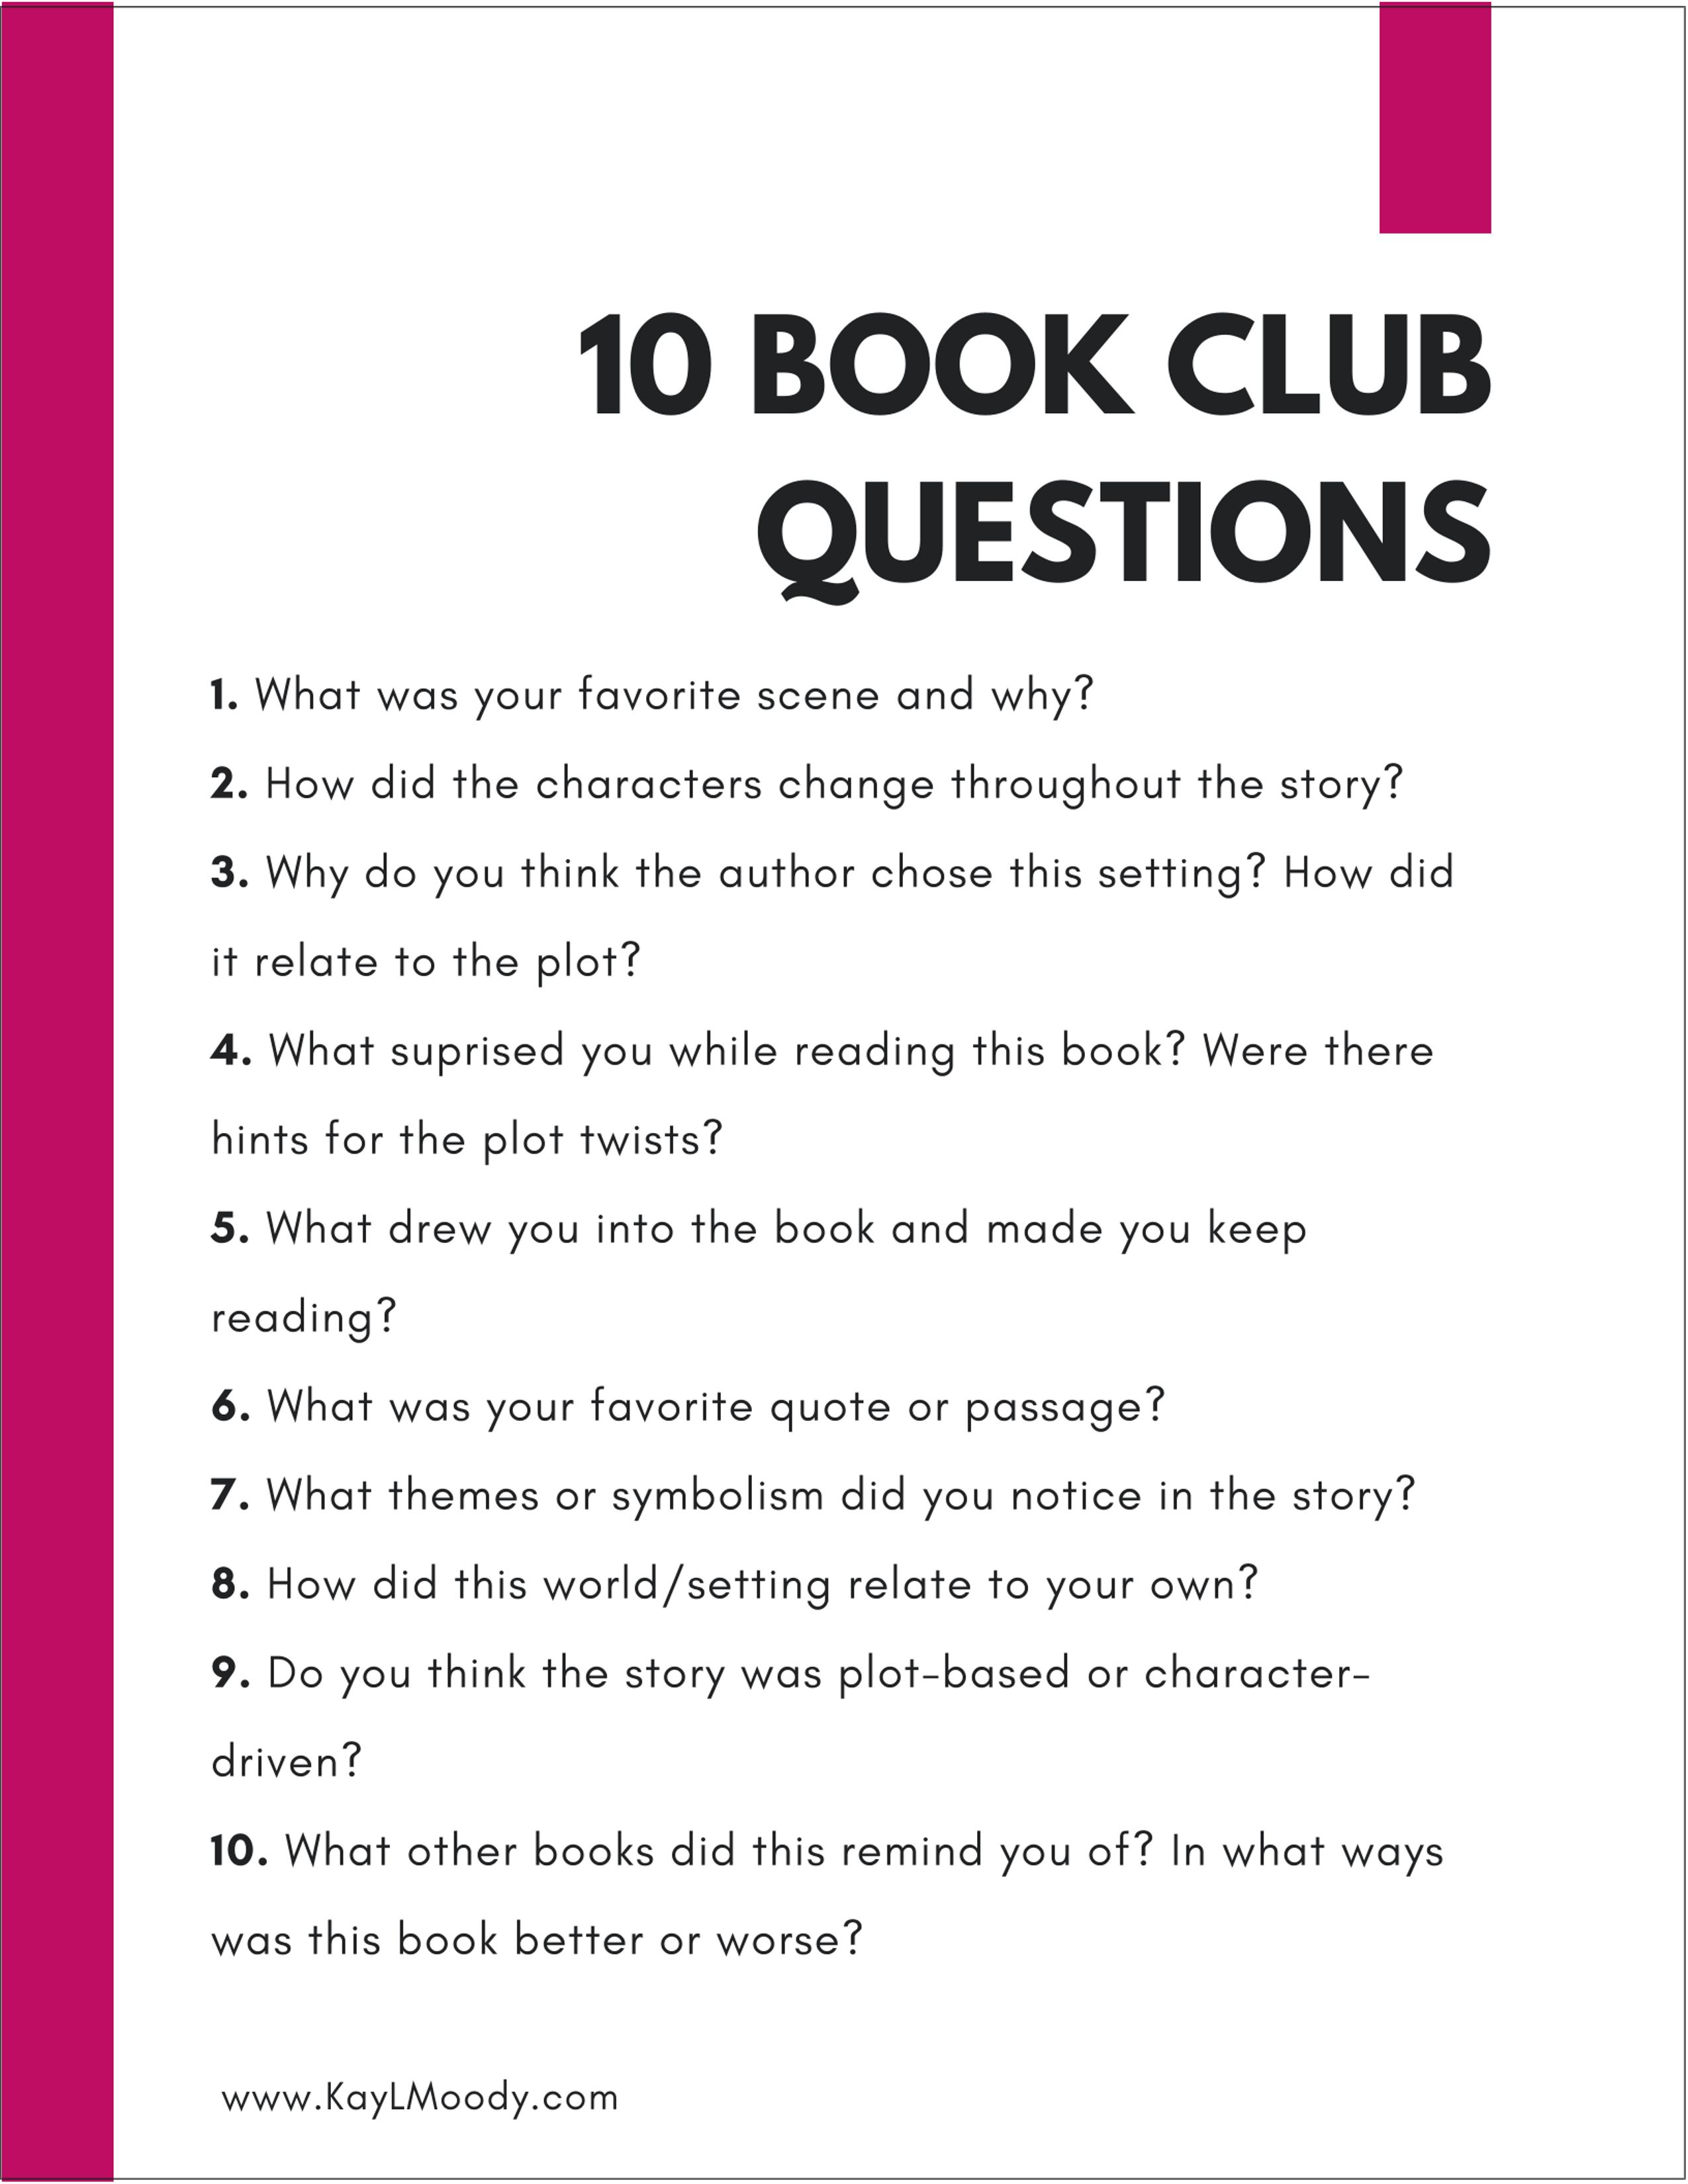 How To Improve Analytical Skills By Reading Fiction Kay L Moody Online Book Club Book Club Reads Book Club Suggestions